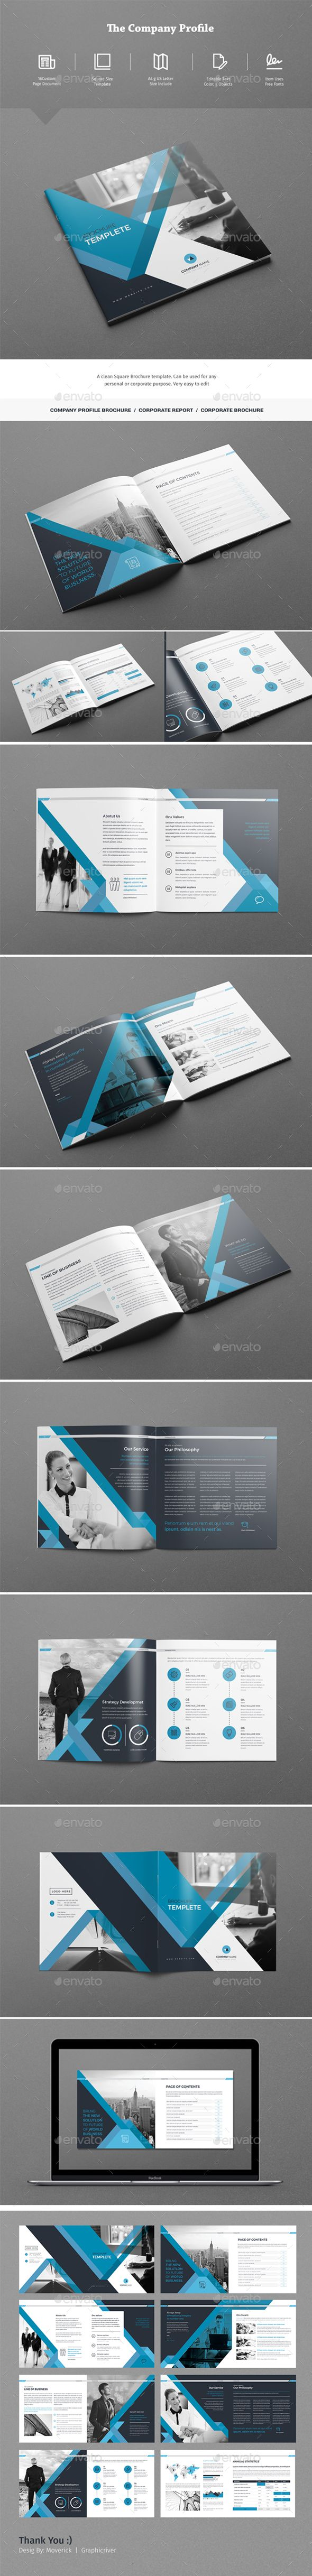 The Company Profile Brochure Template InDesign INDD | diseño ...